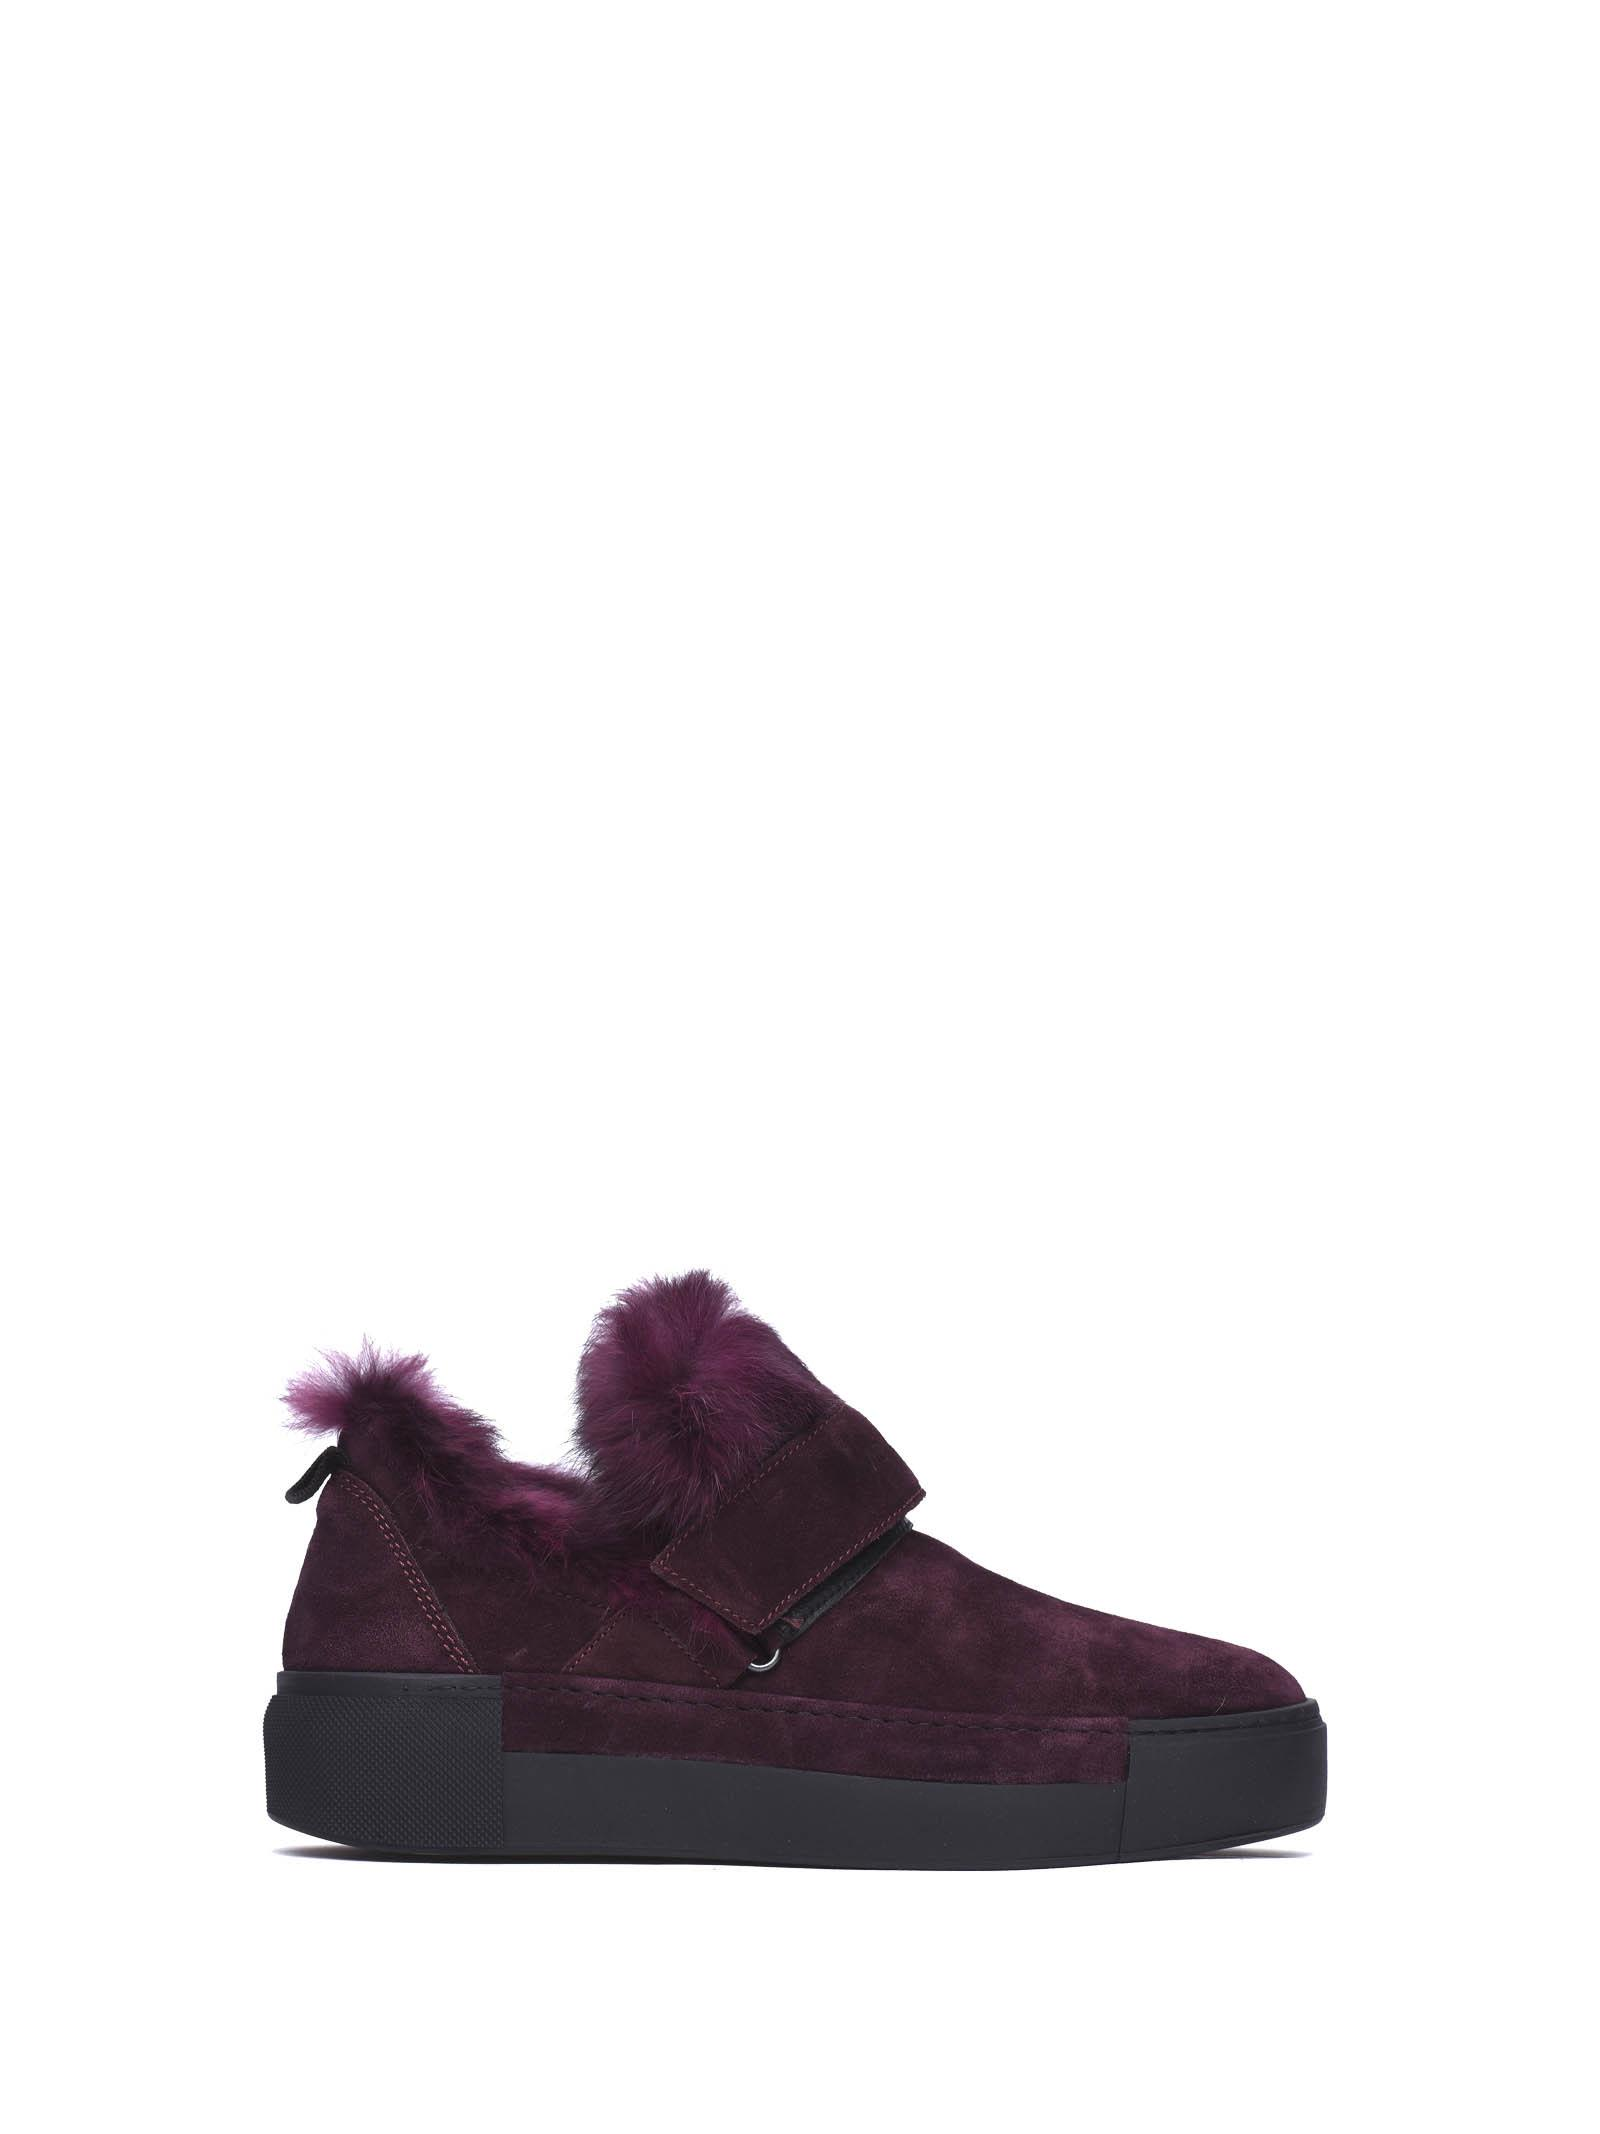 Vic Matiè Bordeaux Slip-on Shoes With Velcro And Rabbit Fur Appliqué